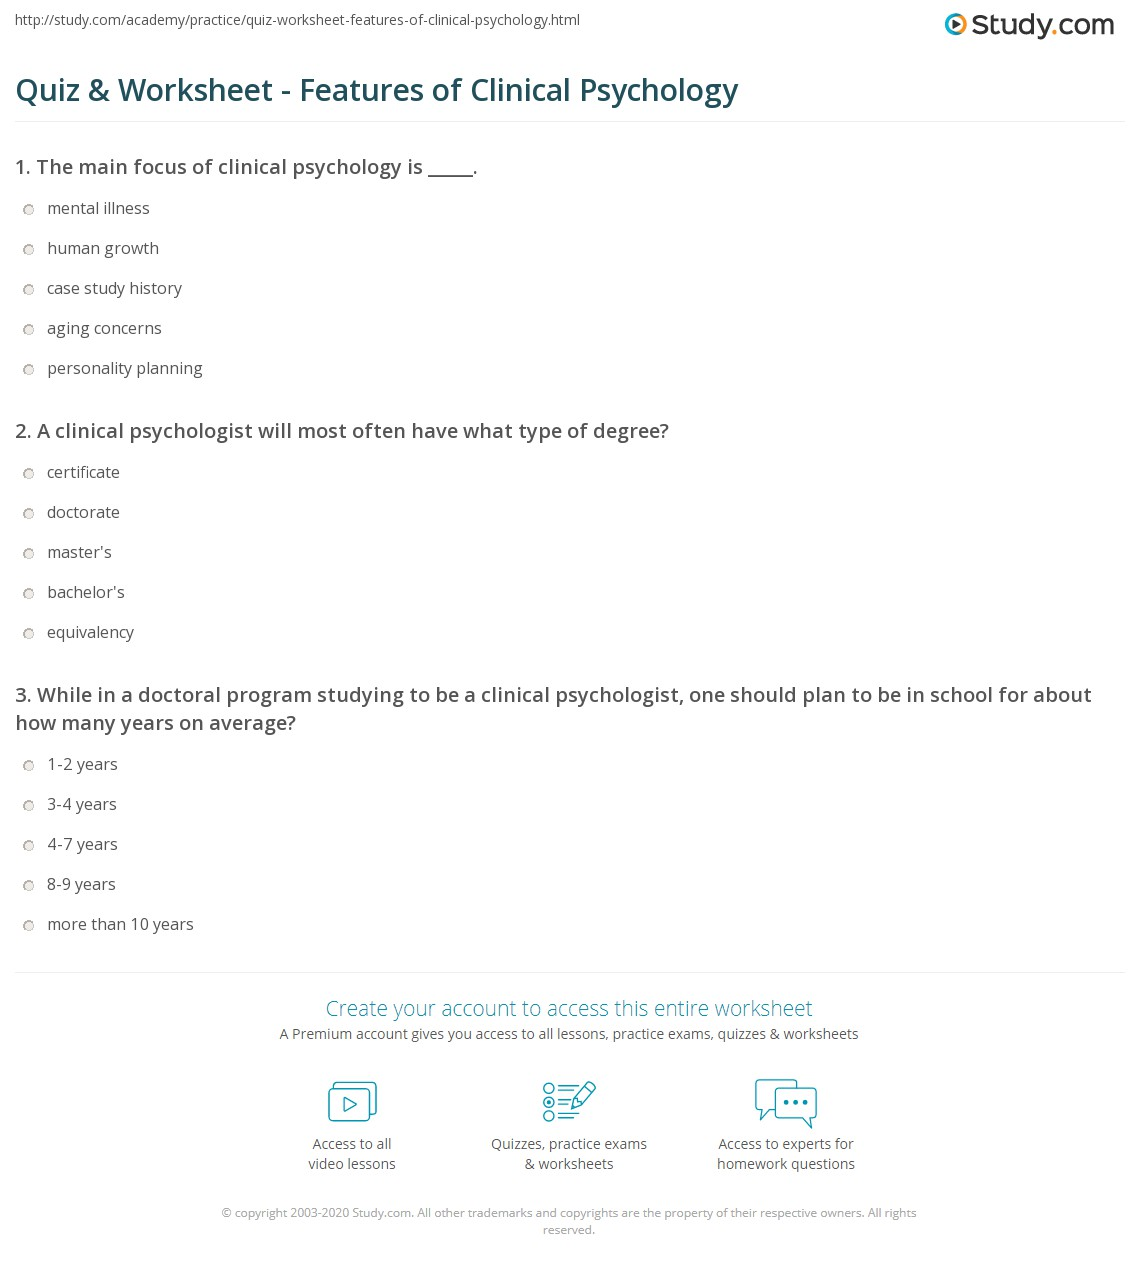 What type of degrees needed to be a clinical psychologist?